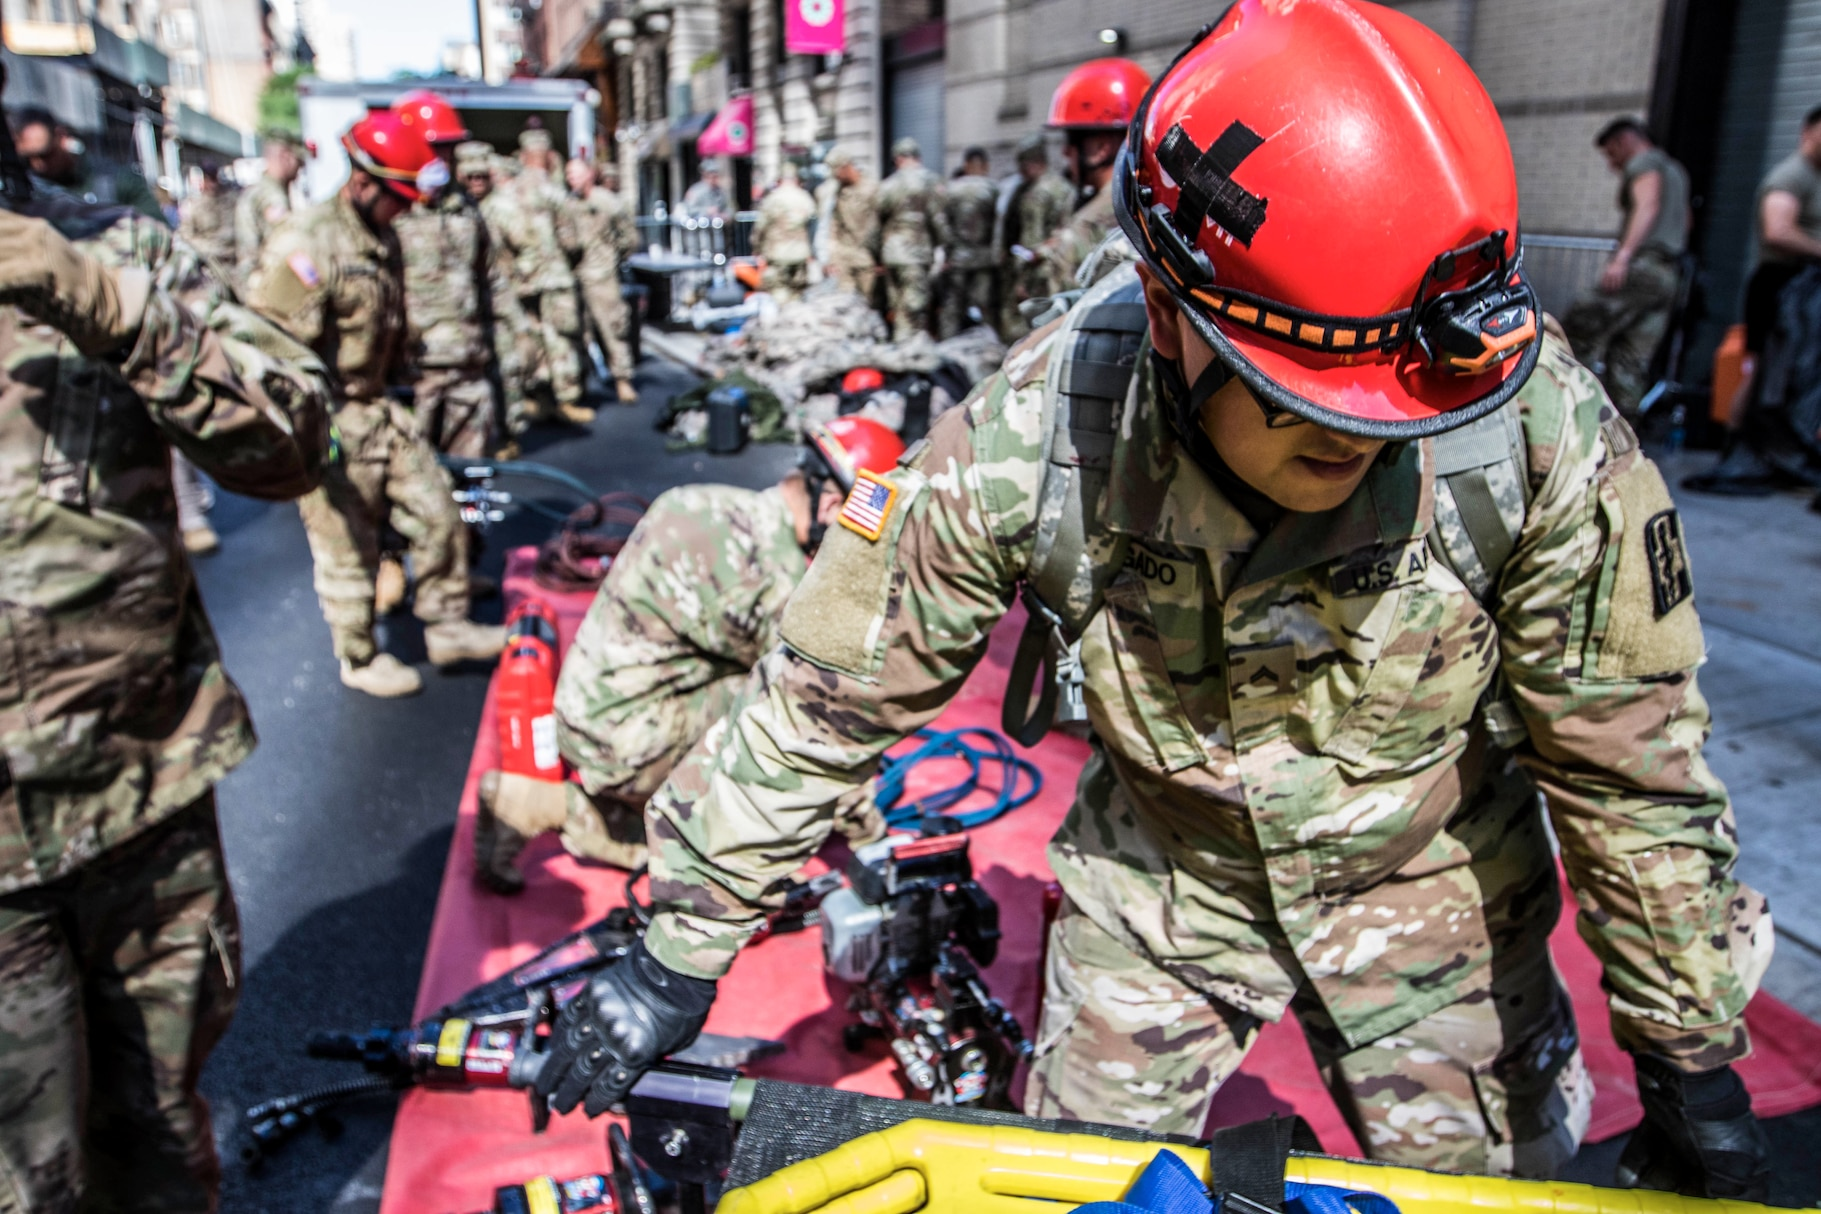 Army Reserve Spc. Jason Delgado, 328th Combat Support Hospital, practices lifesaving skills in Manhattan, New York, July, 10, 2018. These Soldiers are part of a national response element that works with civil authorities to provide manpower, vehicles, and equipment to perform medical services as well as chemical, biological, and radiological clean up — essential skills in the event of a disaster or attack. (U.S. Army Reserve photo by Staff Sgt. Felix R. Fimbres)